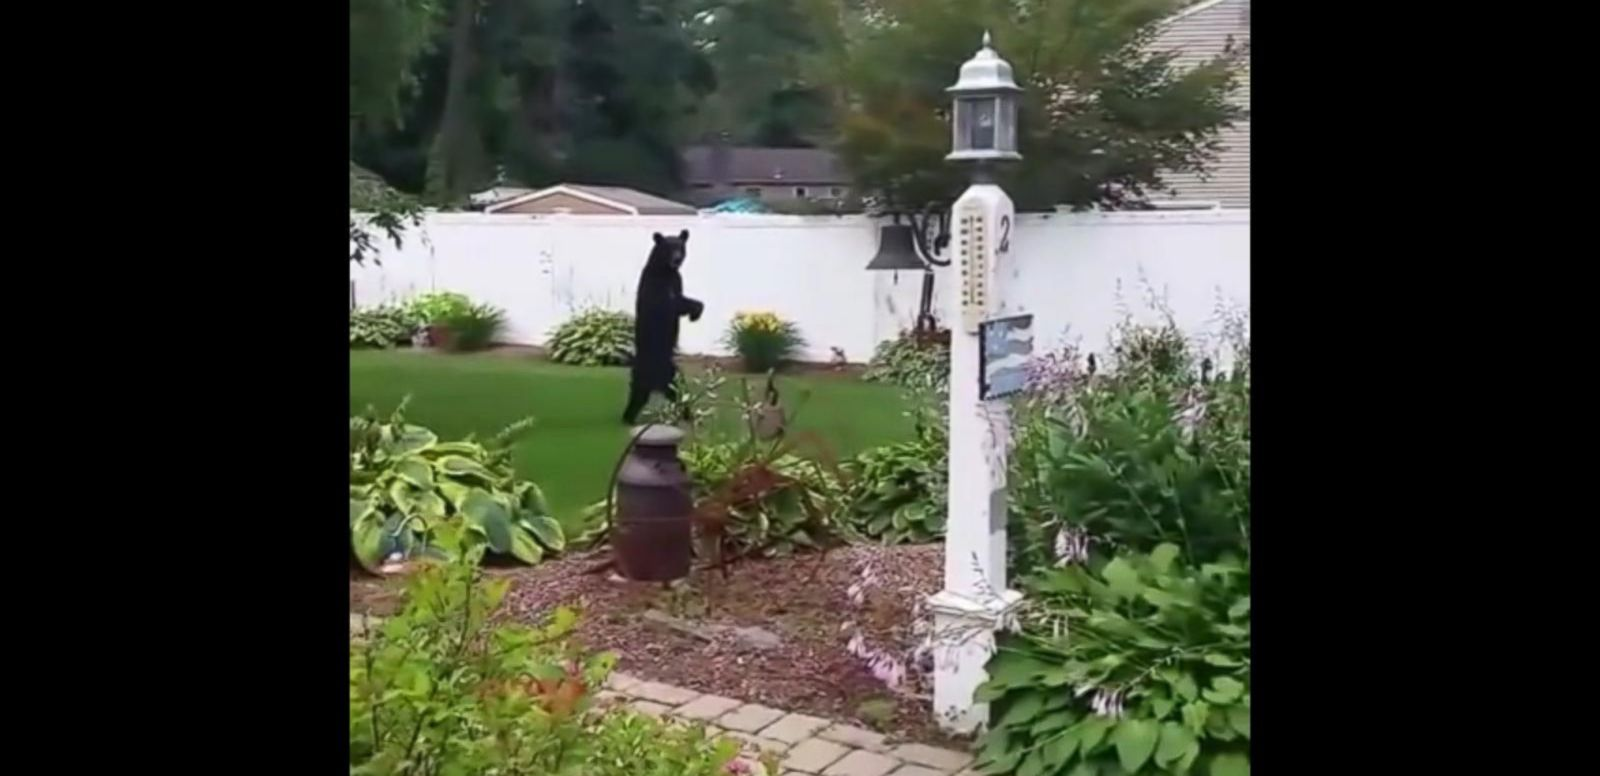 VIDEO: A bear is seen walking upright on his two hind legs in this still from a video taken from a home in Oak Ridge, New Jersey, on July 17, 2015.